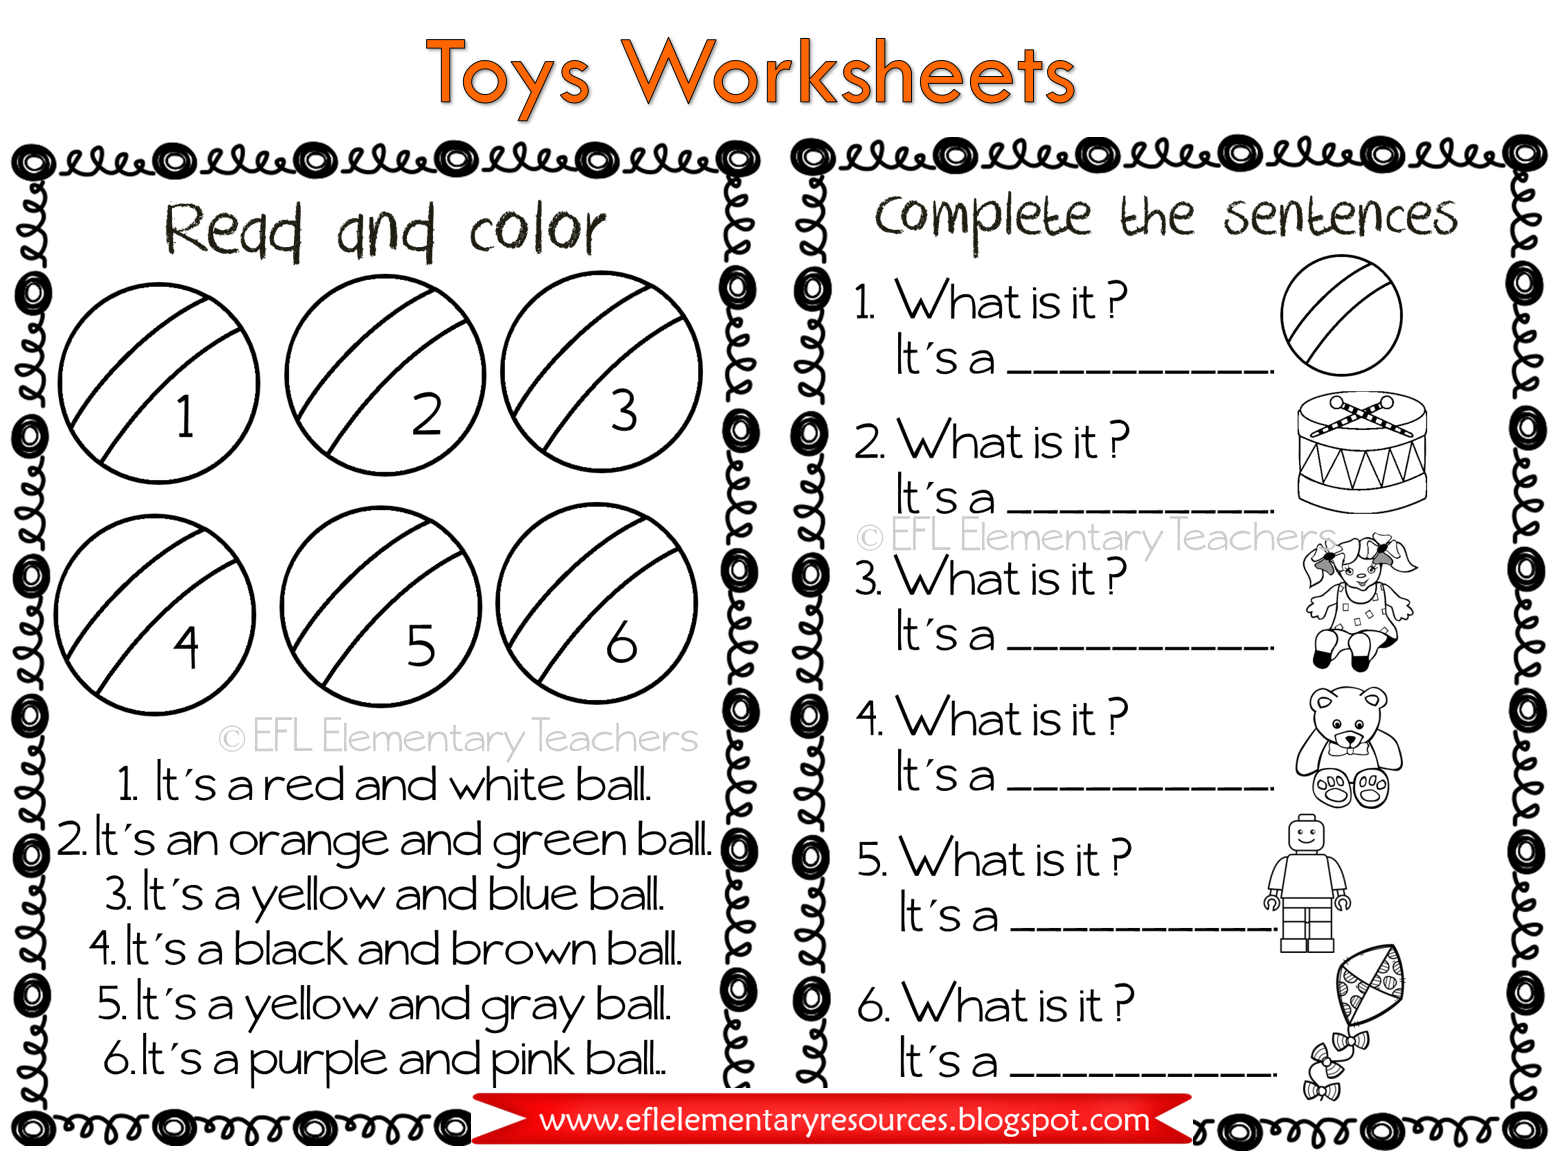 Efl Elementary Teachers Toys Thematic Unit For Elementary Ell